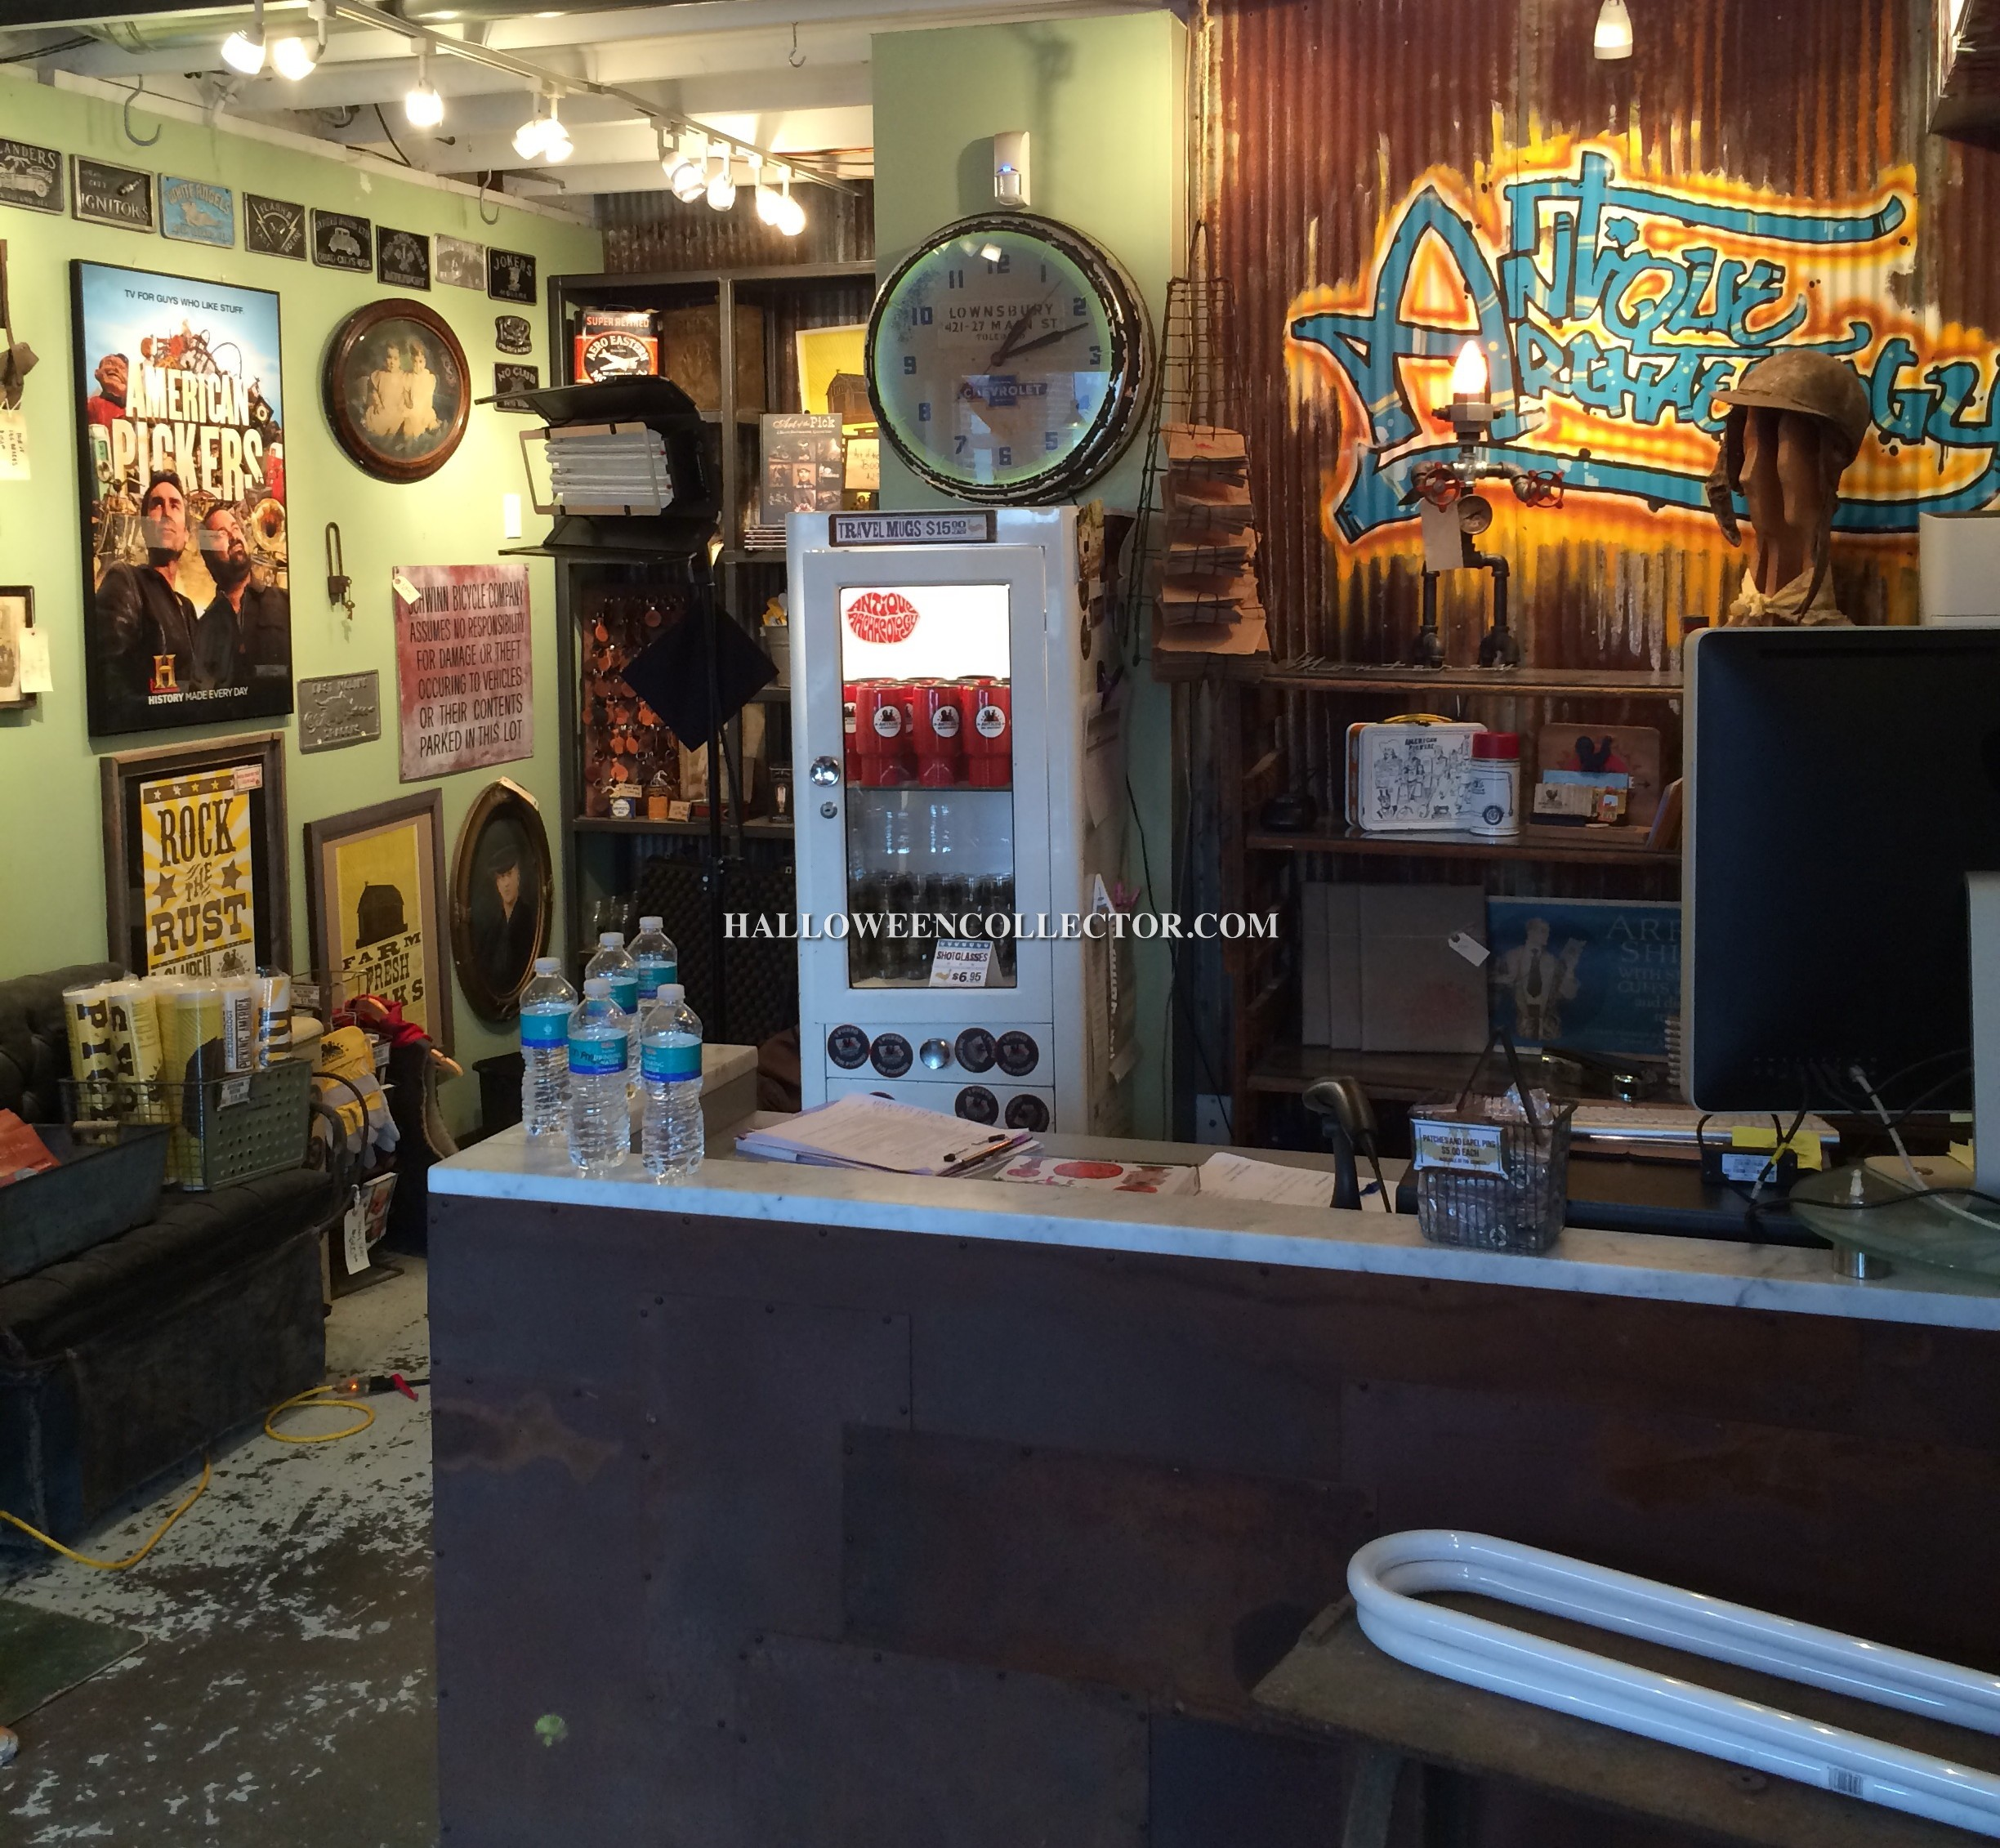 Emily From American Pickers photo 18